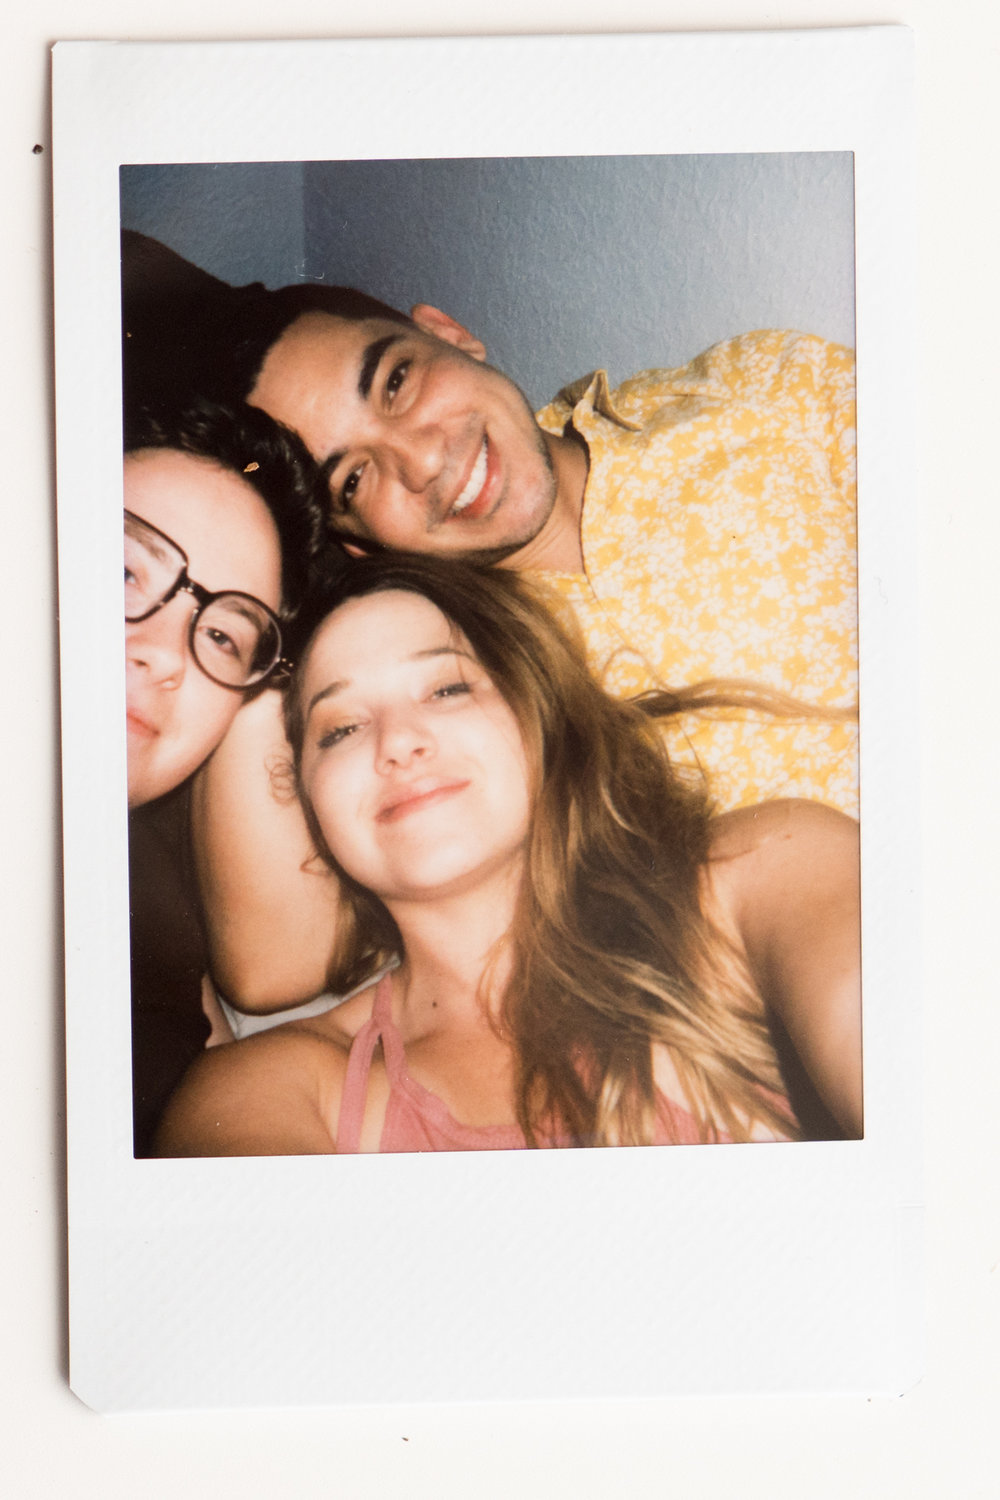 personal-instax-friends.jpg